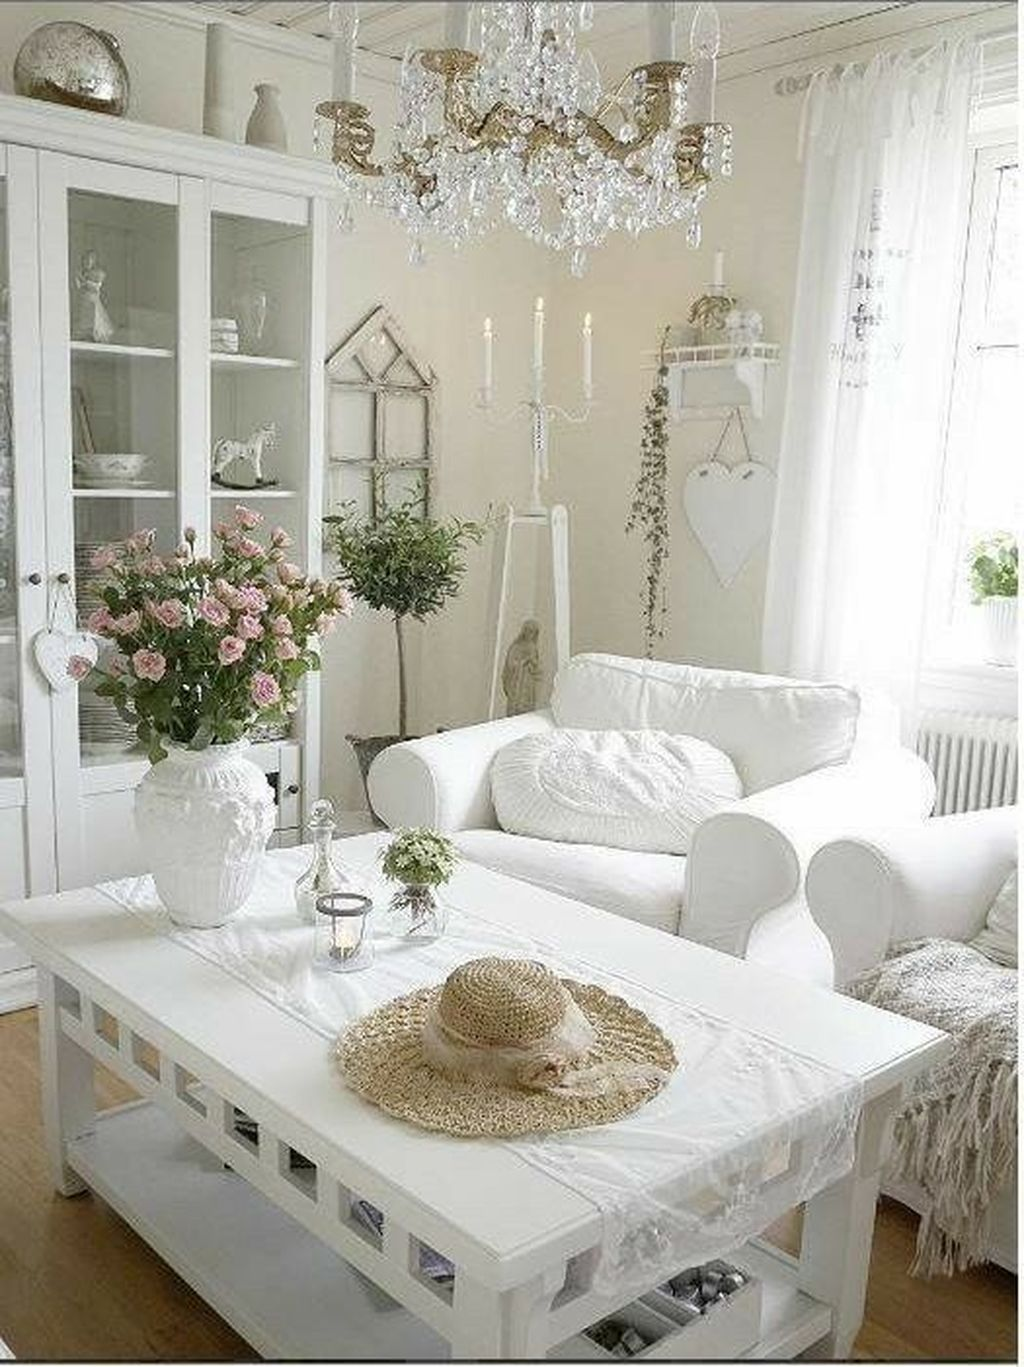 Lovely Chic Living Room Wall Decor Ideas 22 - PIMPHOMEE